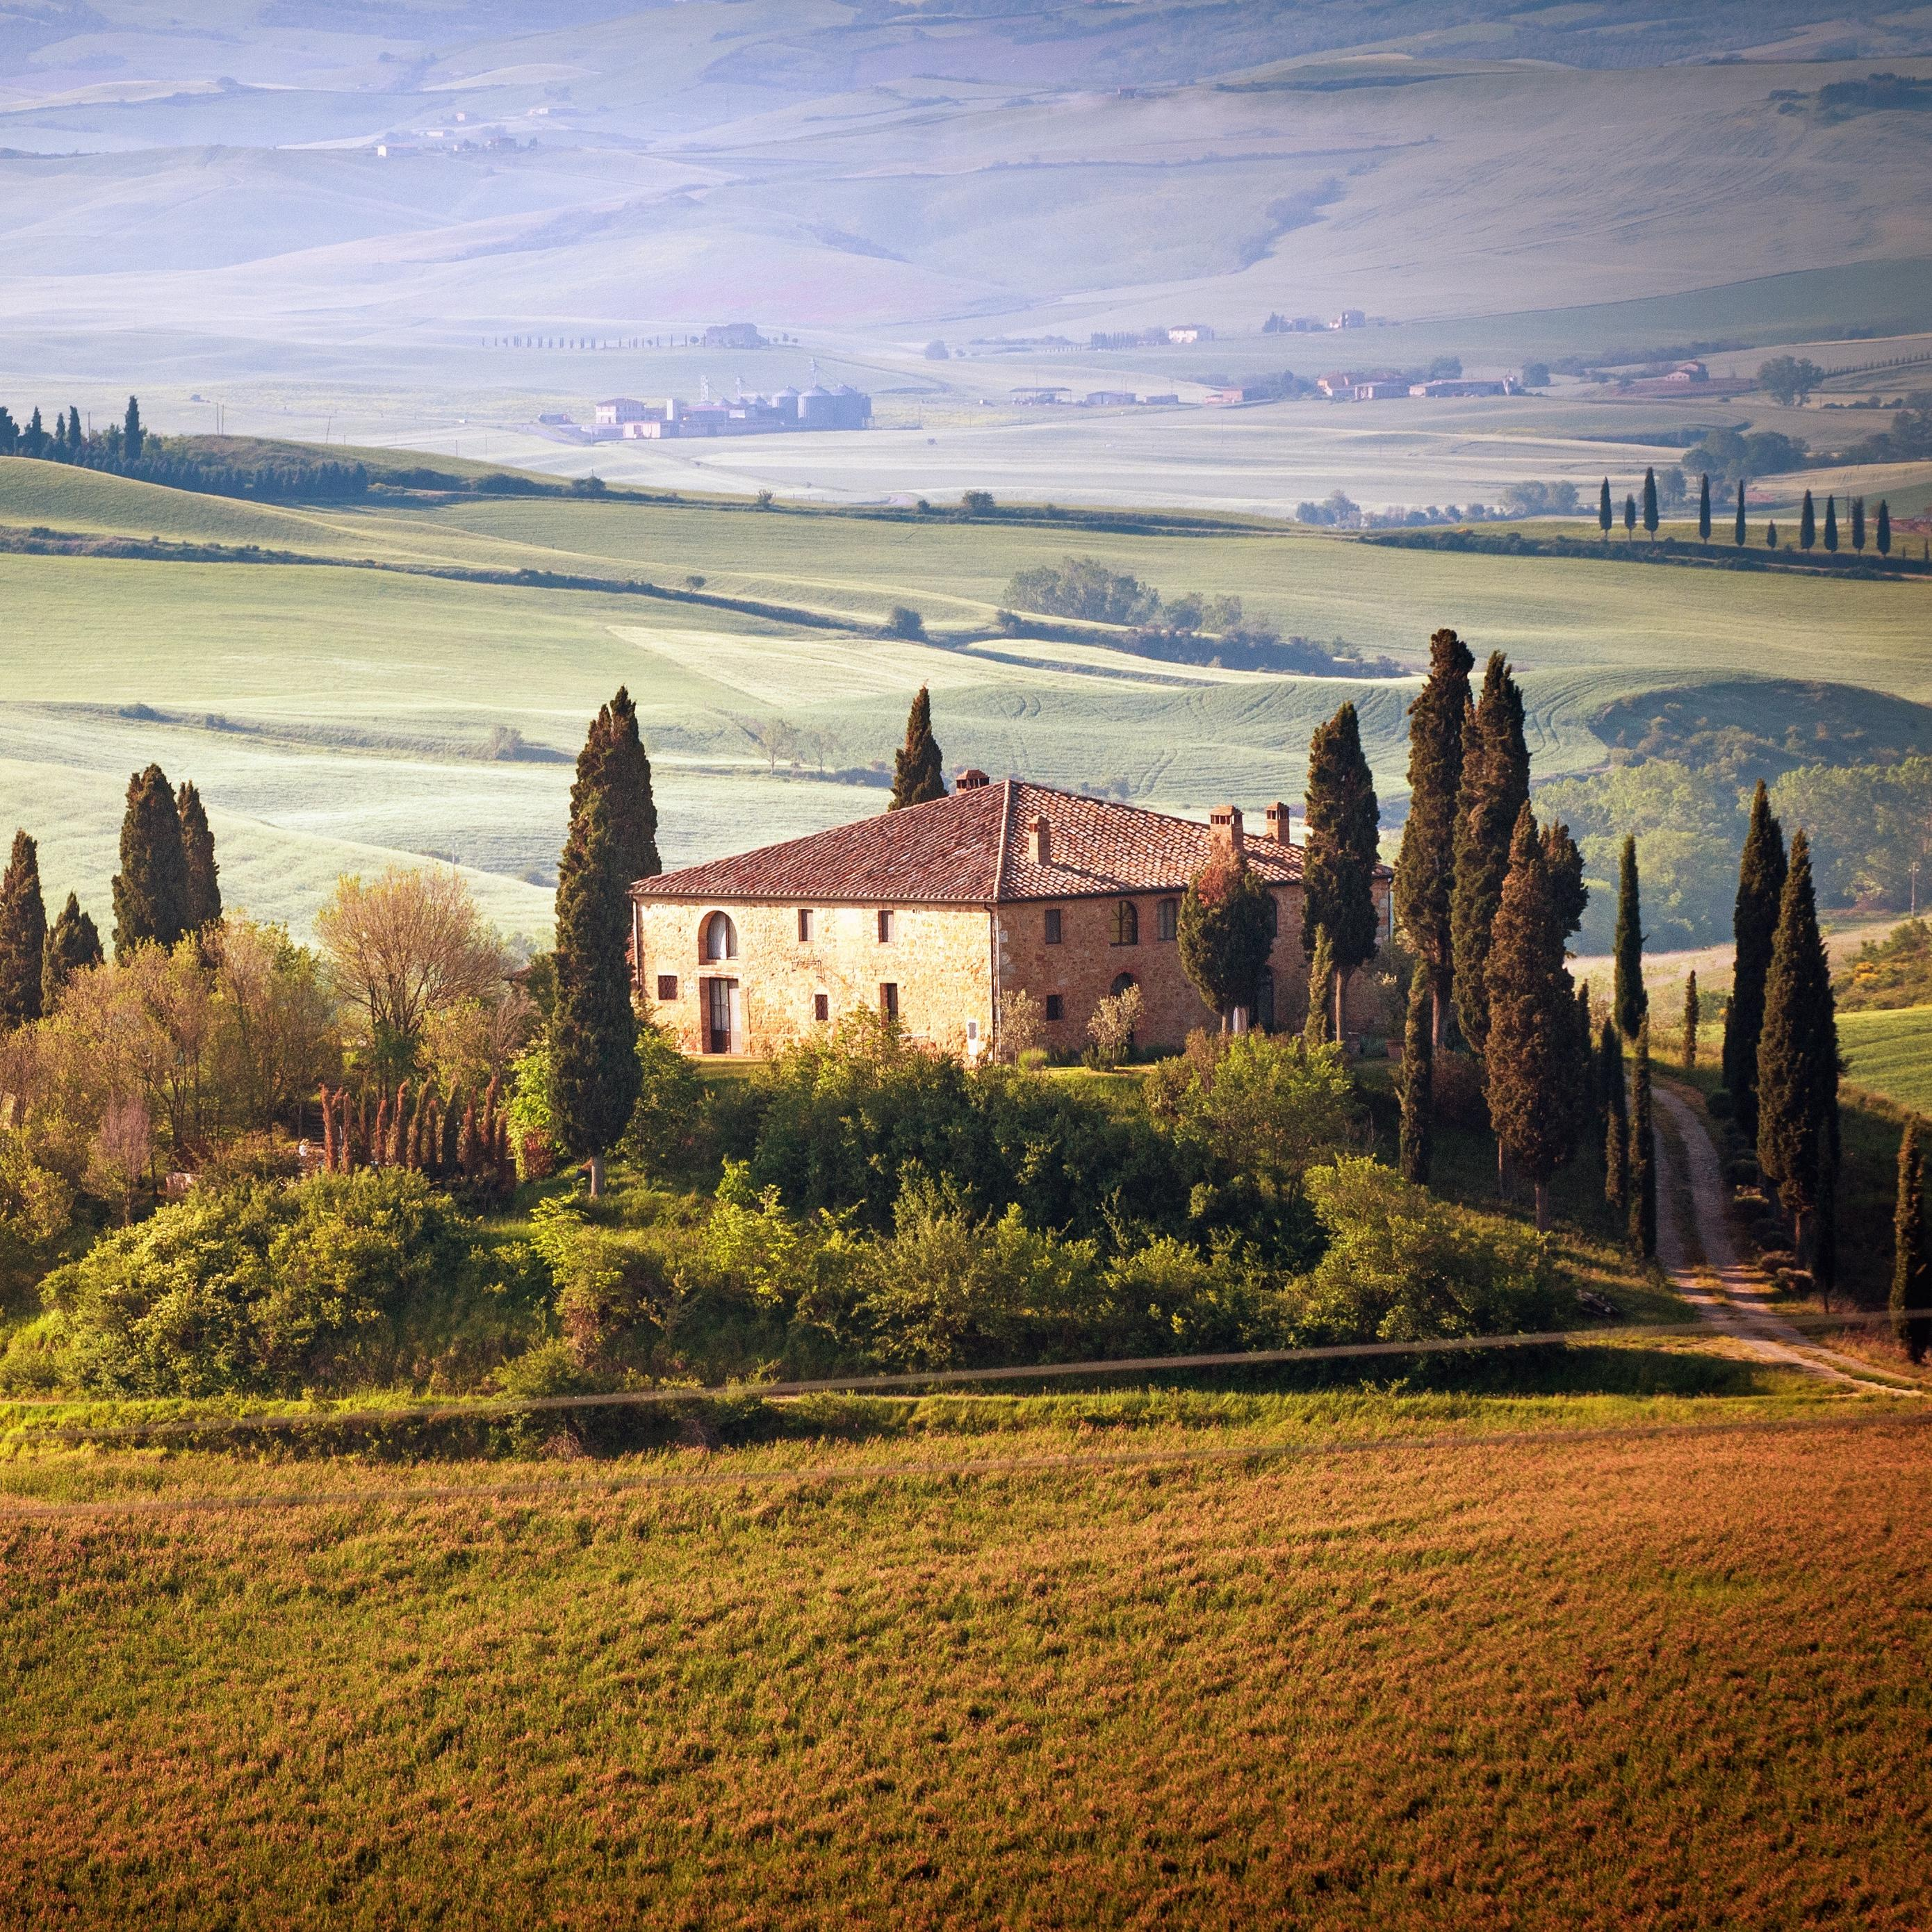 Download wallpaper 2780x2780 italy, tuscany, summer, countryside ...